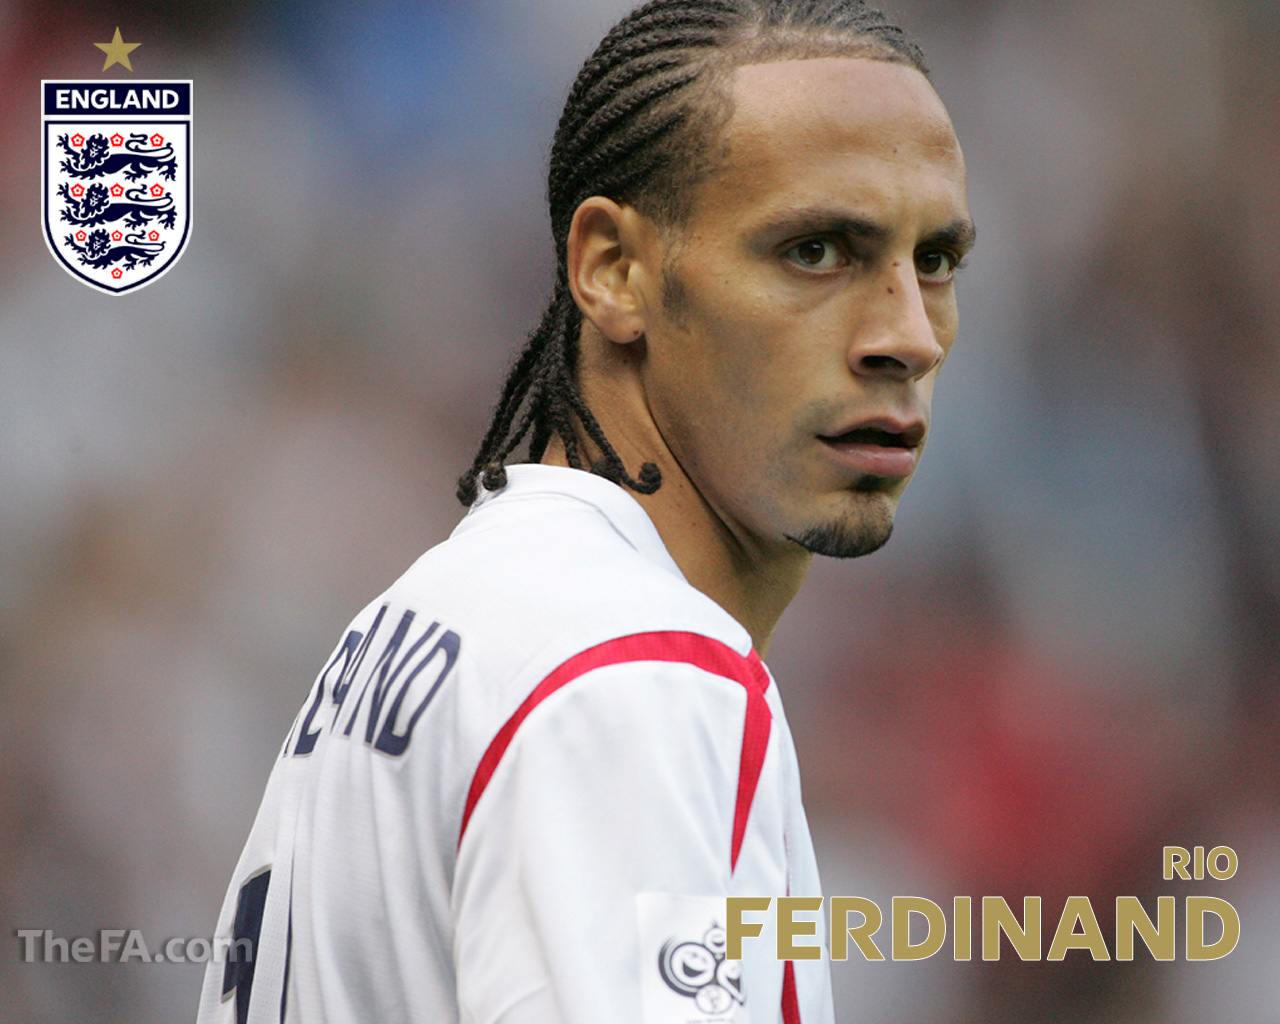 Sports and Players Rio Ferdinand